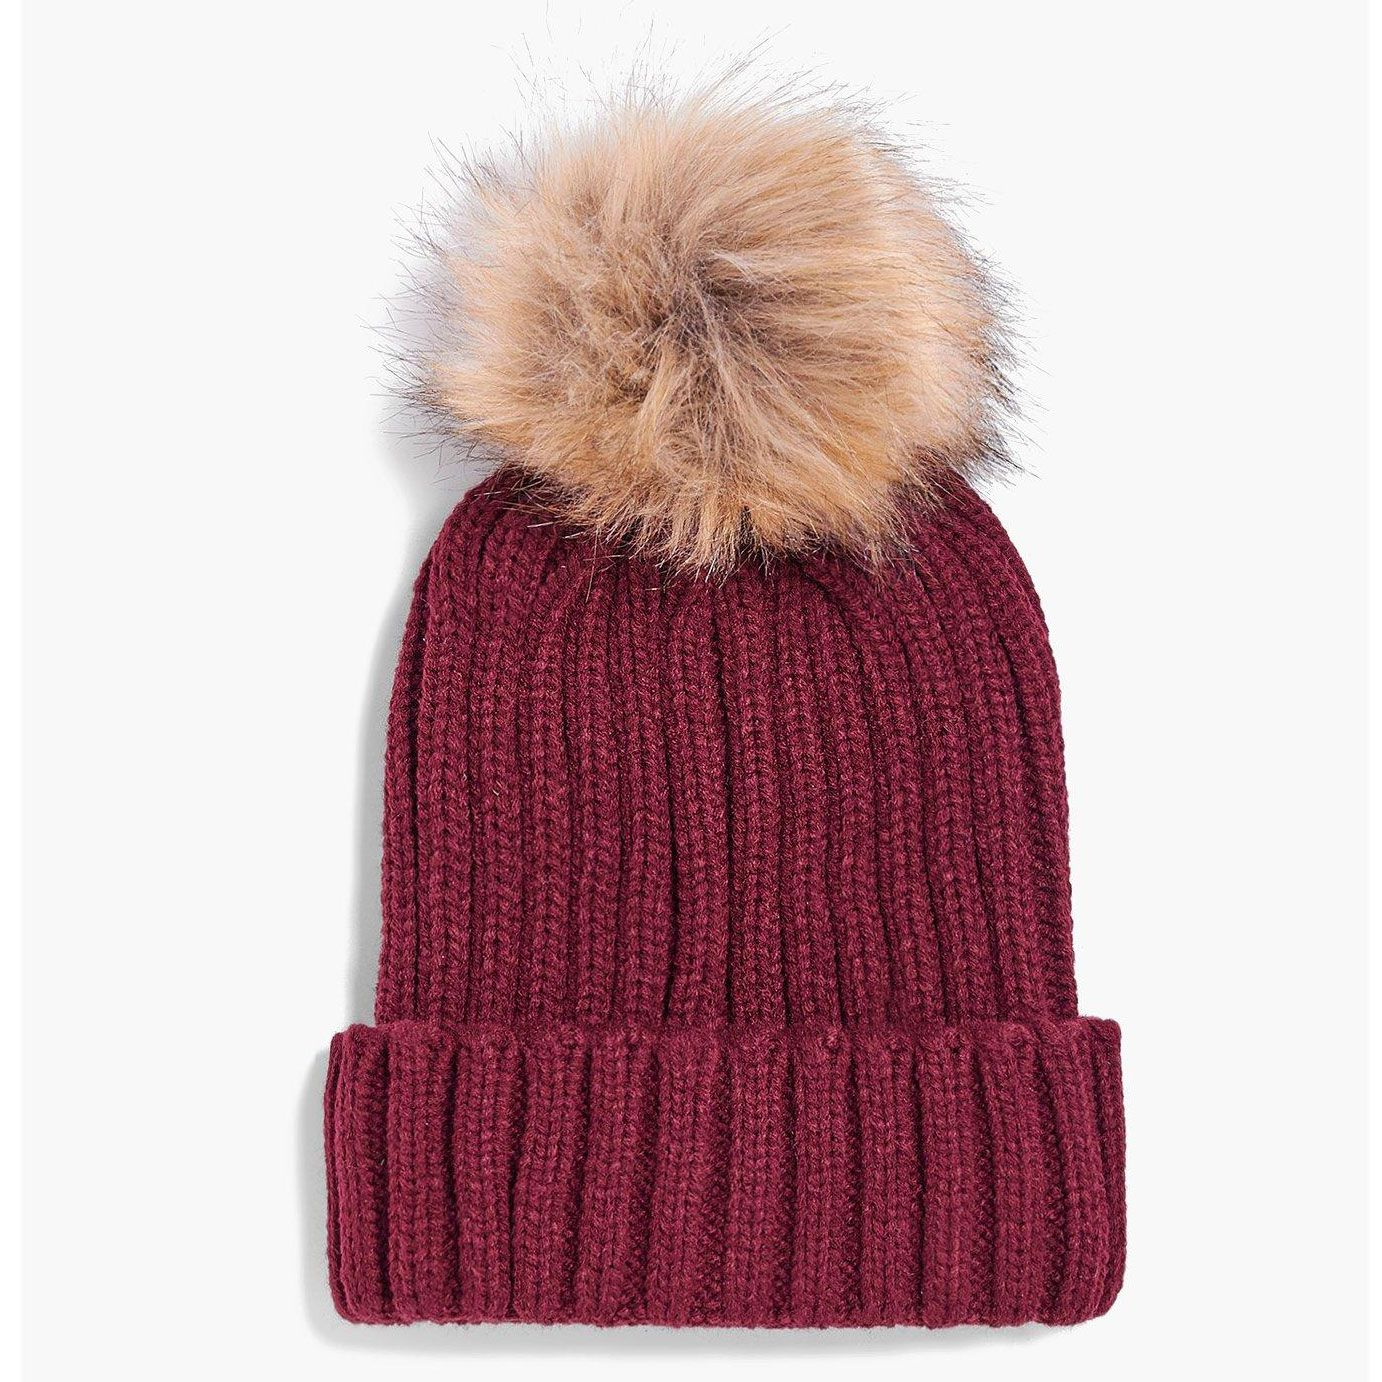 """<p>The beanie hat is a cold weather standard. Class it up with Boohoo's grown-up,removable-pom take on the style.($14)</p><p><a href=""""http://us.boohoo.com/matilda-detachable-faux-fur-pom-beanie-hat/DZZ64018.html?color=135"""" target=""""_blank"""" class=""""slide-buy--button"""" data-tracking-id=""""recirc-text-link"""">BUY NOW</a></p>"""